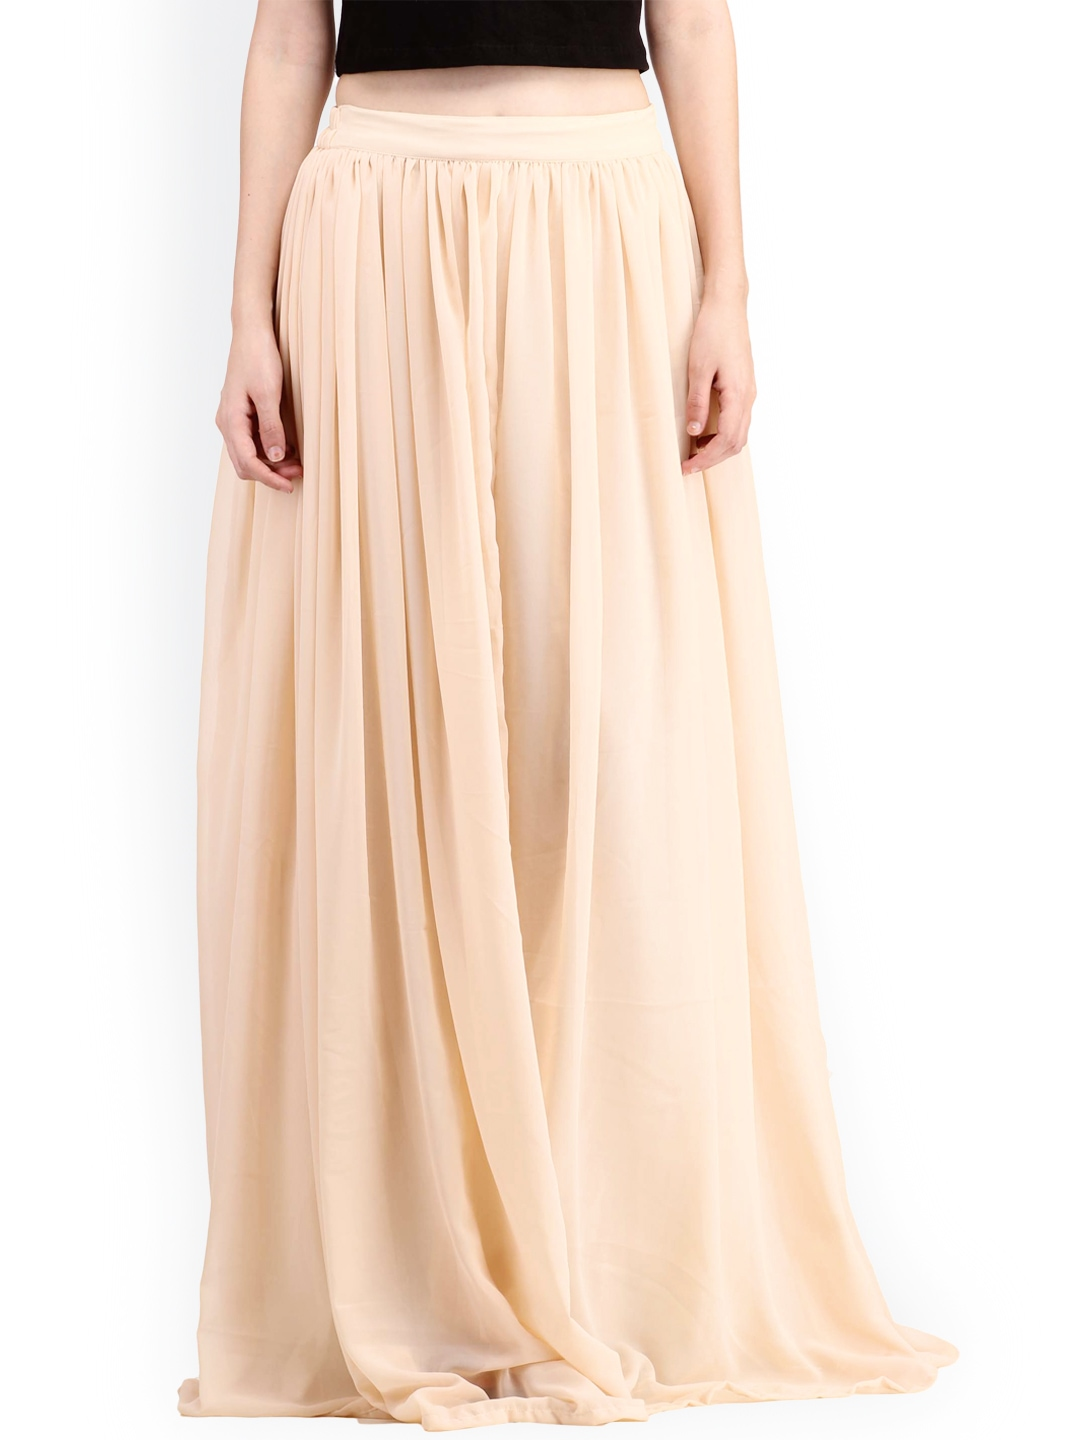 Buy Cation Beige Maxi Skirt - Skirts for Women | Myntra